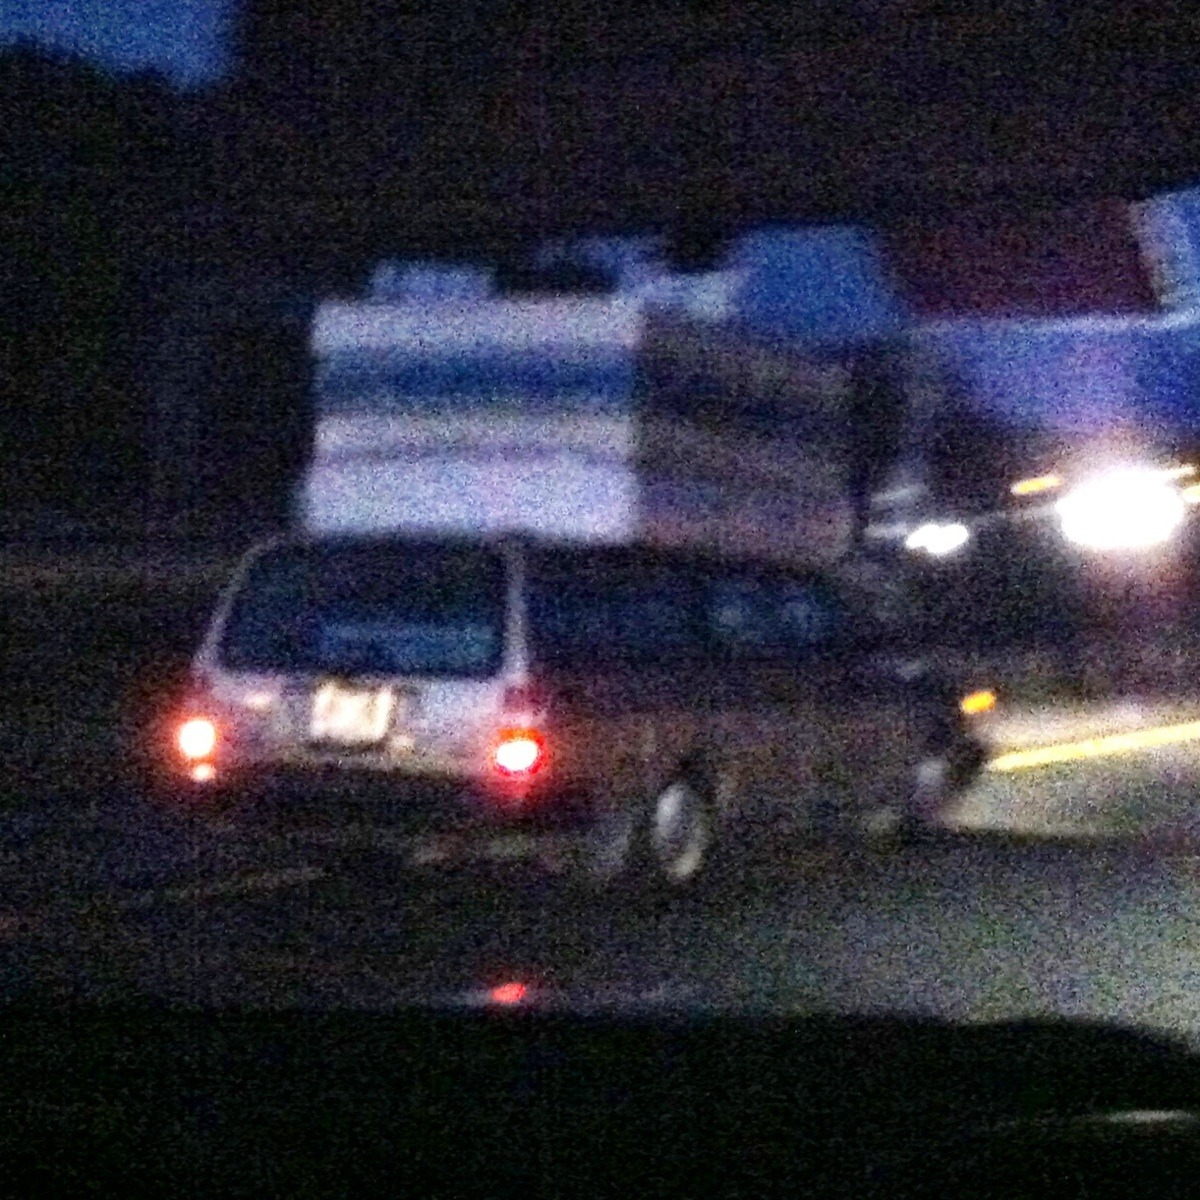 That's definitely the first time I've ever seen someone transporting four mattresses on top of a car. I sure hope he had a good hold on them out the driver side window.